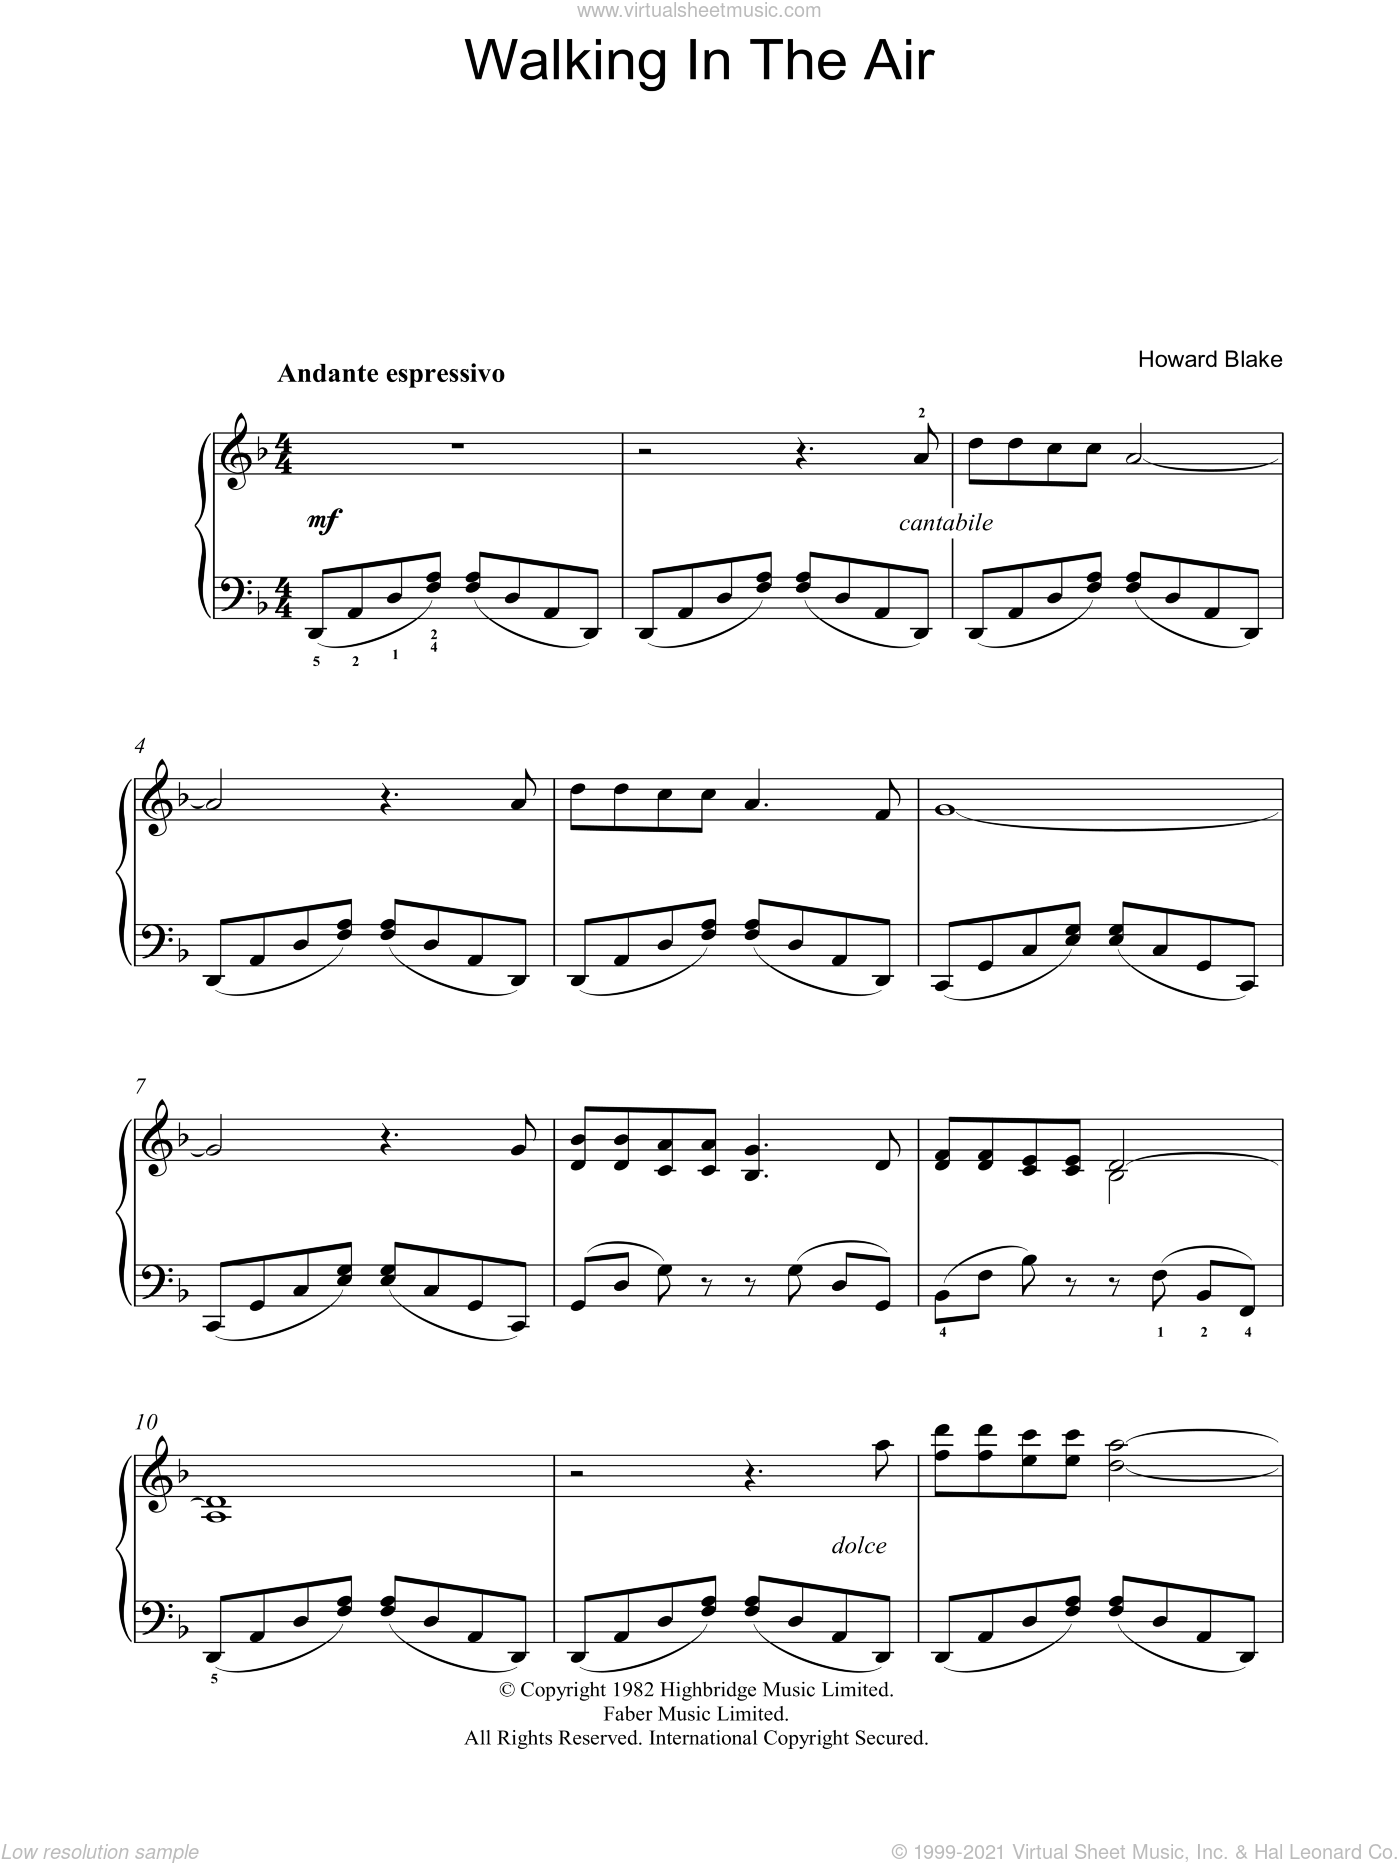 Walking In The Air sheet music for piano solo by Howard Blake, intermediate